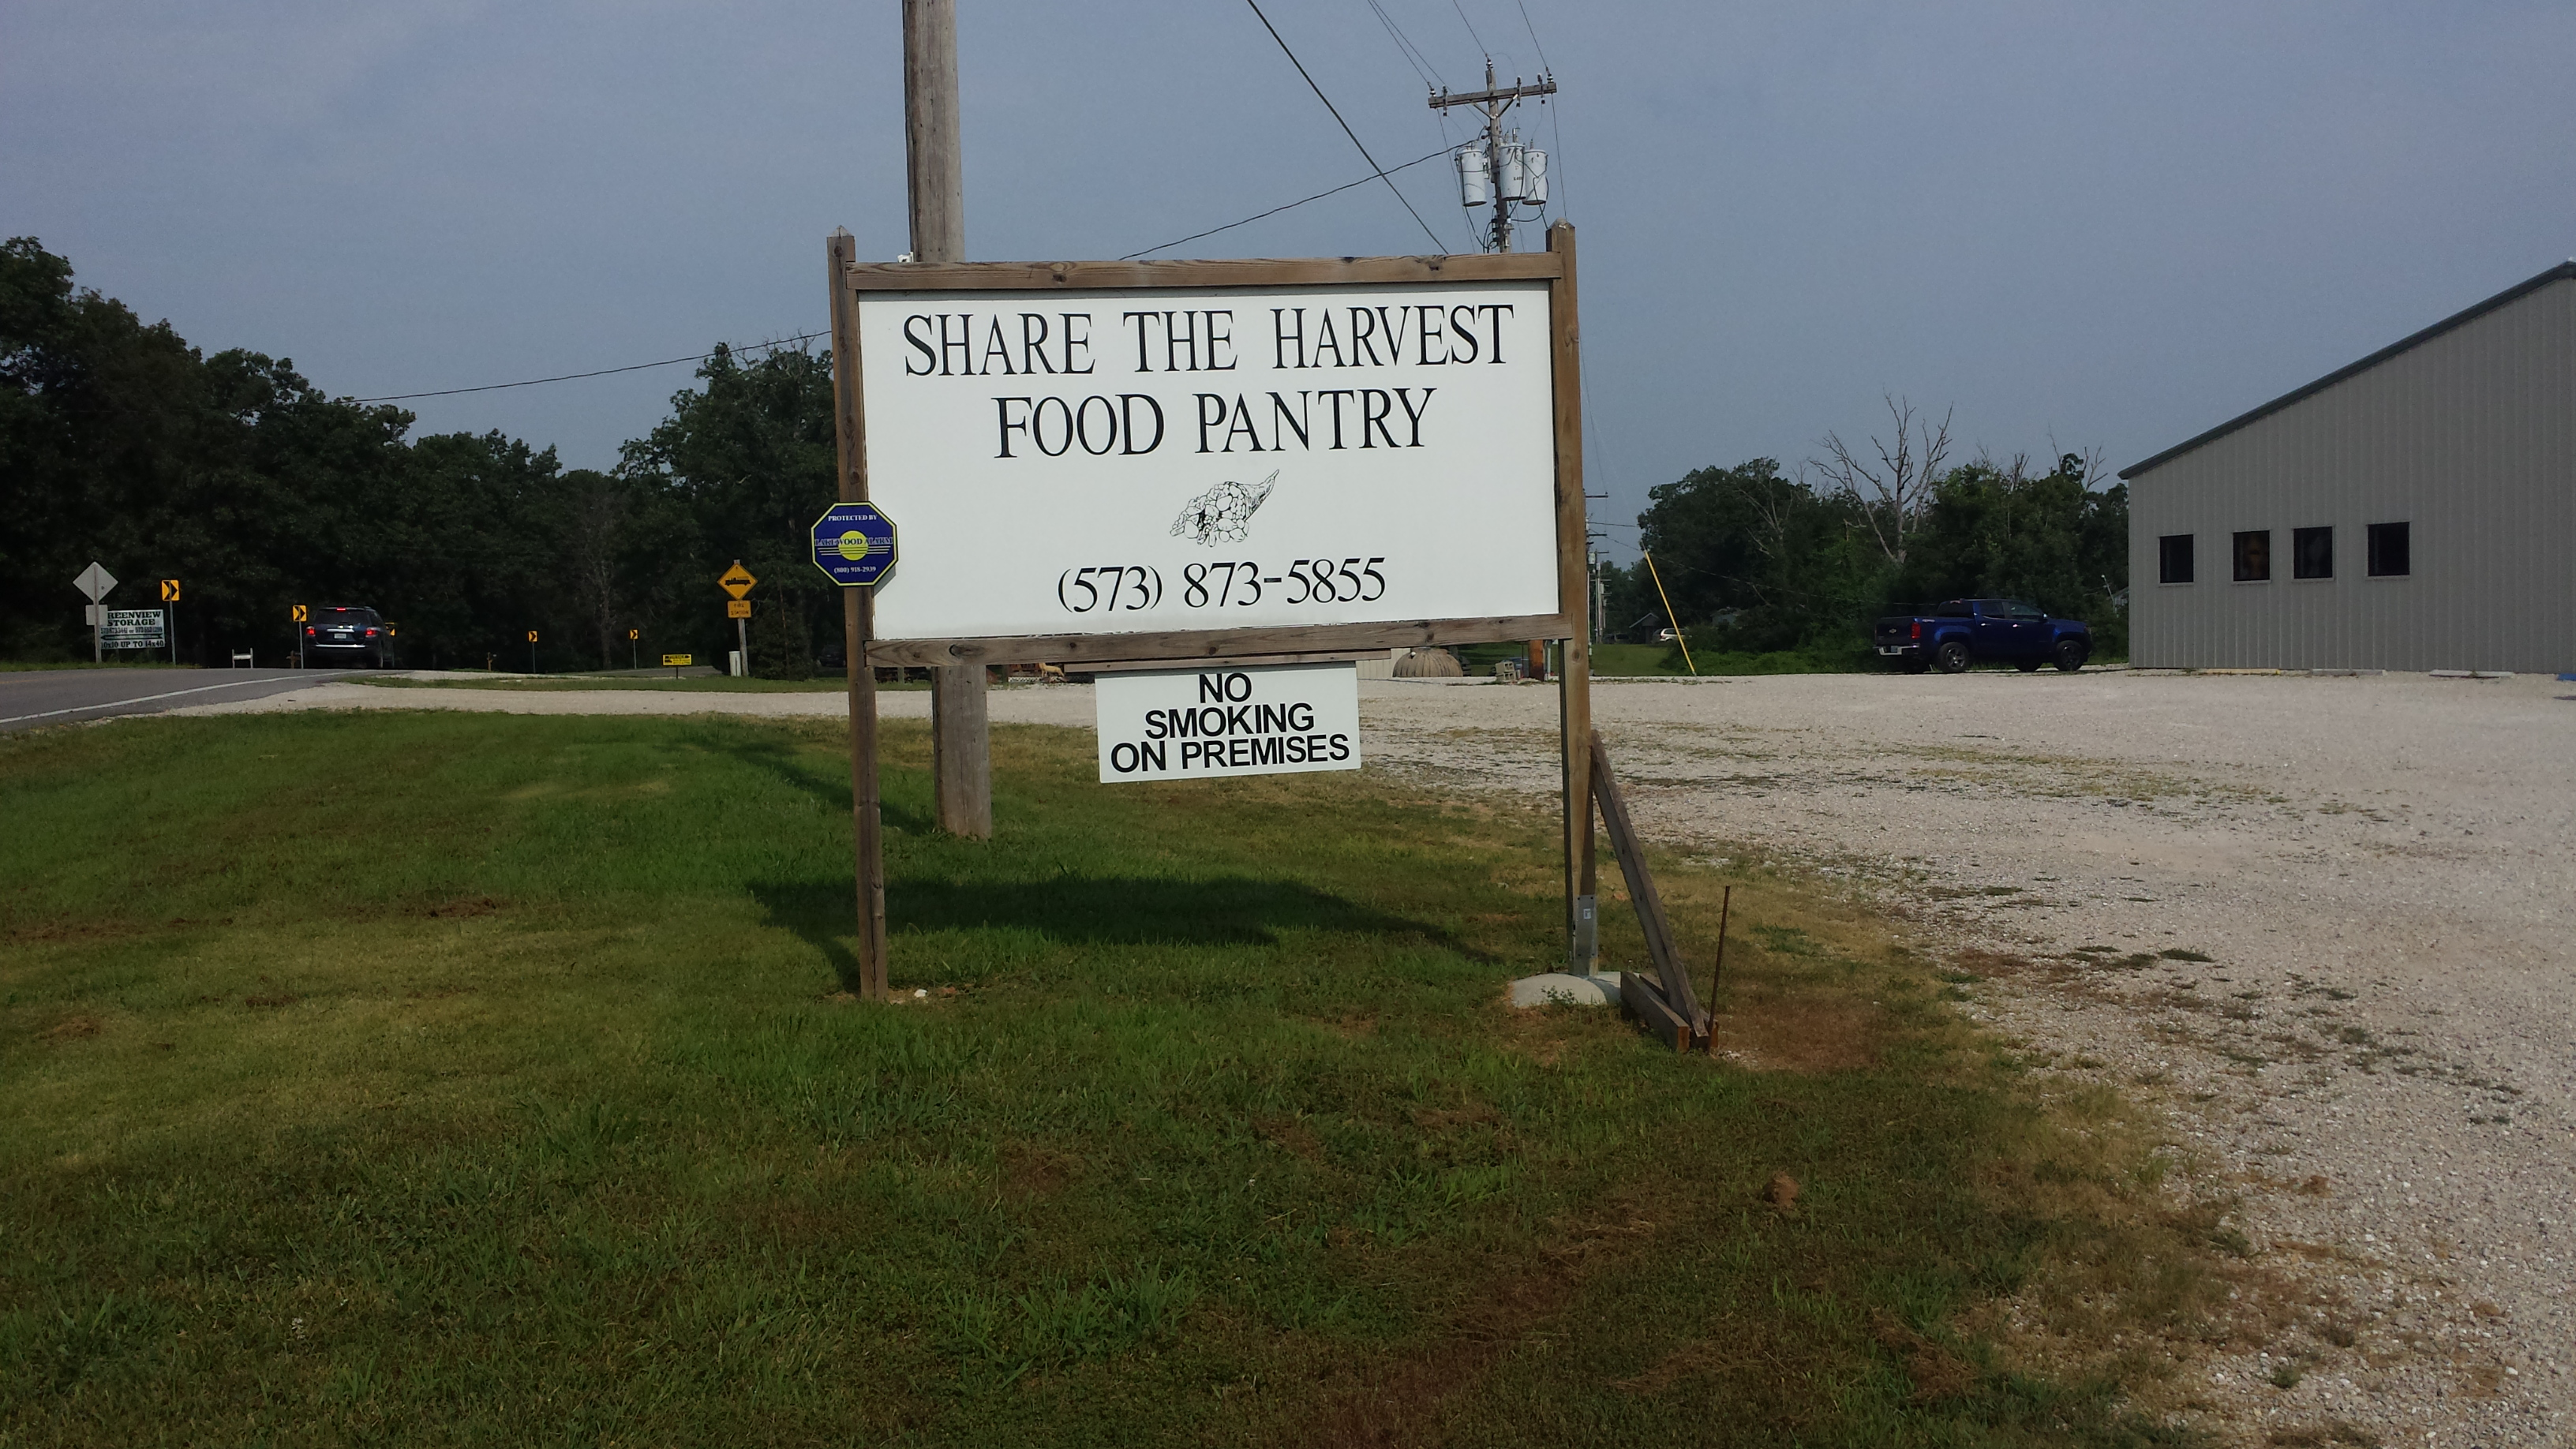 About Share the HarvestShare the Harvest